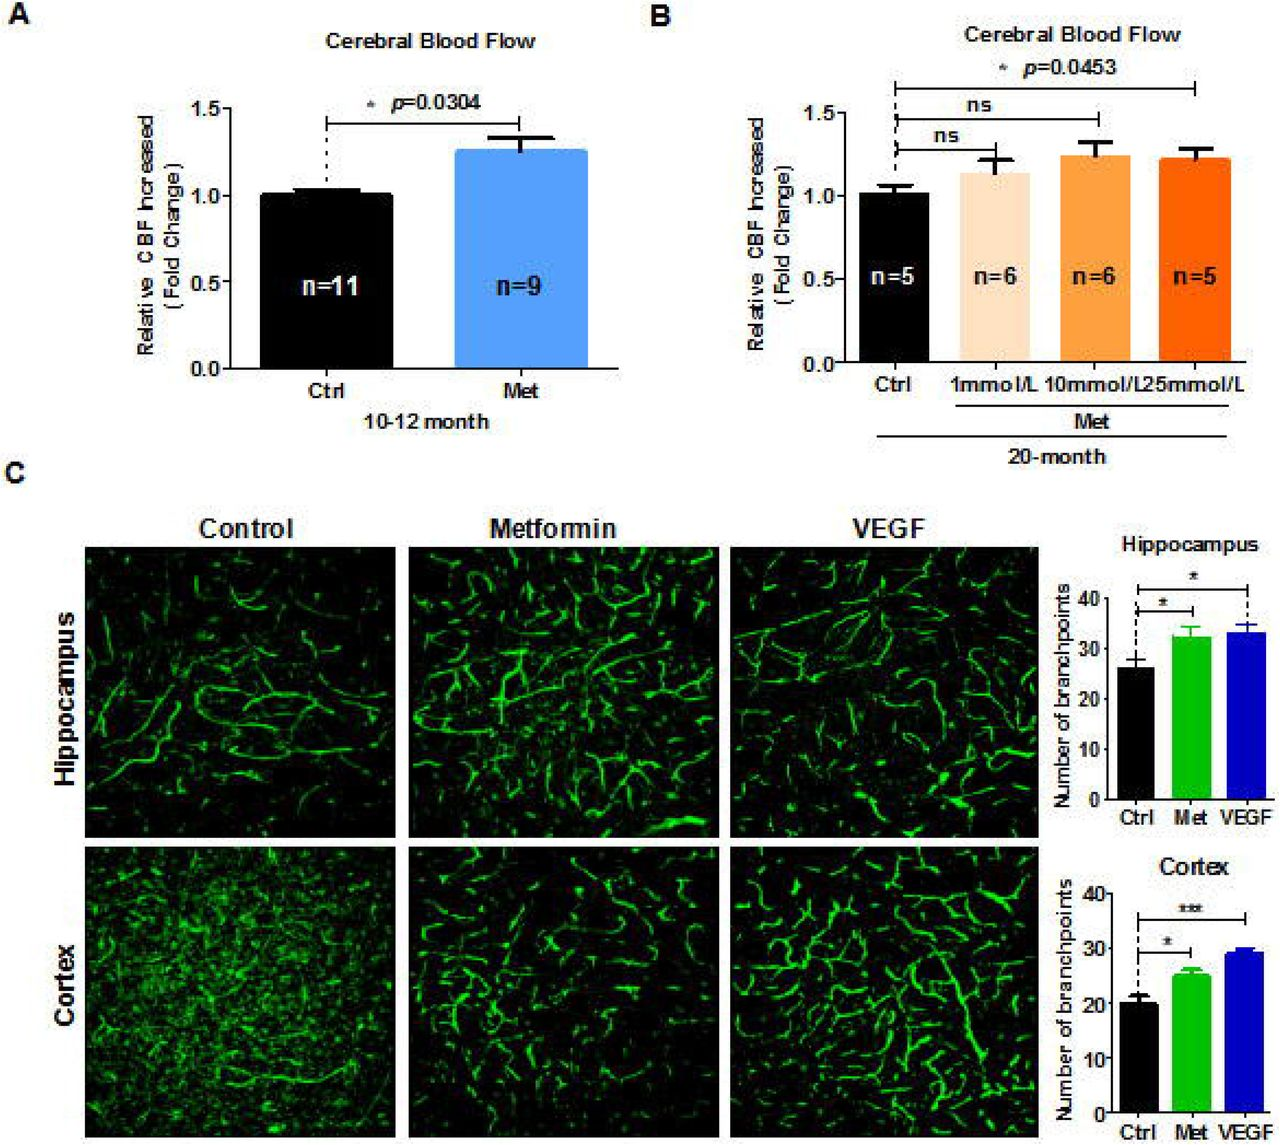 Metformin rejuvenation of neurogenic potential in aged mice. (A) The subventricular zone (SVZ) of old mice treated with metformin ( n ≥ 3) immunostained with the neural stem cell marker, Sox2, and newborn neuronal marker, GFAP. Right: Quantification of (B) Sox2 + cells and (C) DCX + cells. (D) SVZ of old mice immunostained with the neuronal cell marker, NeuN, and cell proliferation marker, BrdU. Right: Quantification of (E) BrdU + /NeuN + cells to quantify newborn neurons. (F) Representative fields of GFAP and Tuj1 immunofluorescence staining of cultured neural stem cells treated with metformin after 7 days of spontaneous differentiation. Right: Statistical analysis of percentages of (G) GFAP + cells and (H) Tuj1 + cells. Scale bar = 100 μm. Ctrl: Control; Met: Metformin. The overall significance between two groups was determined by Student's t -test. * p